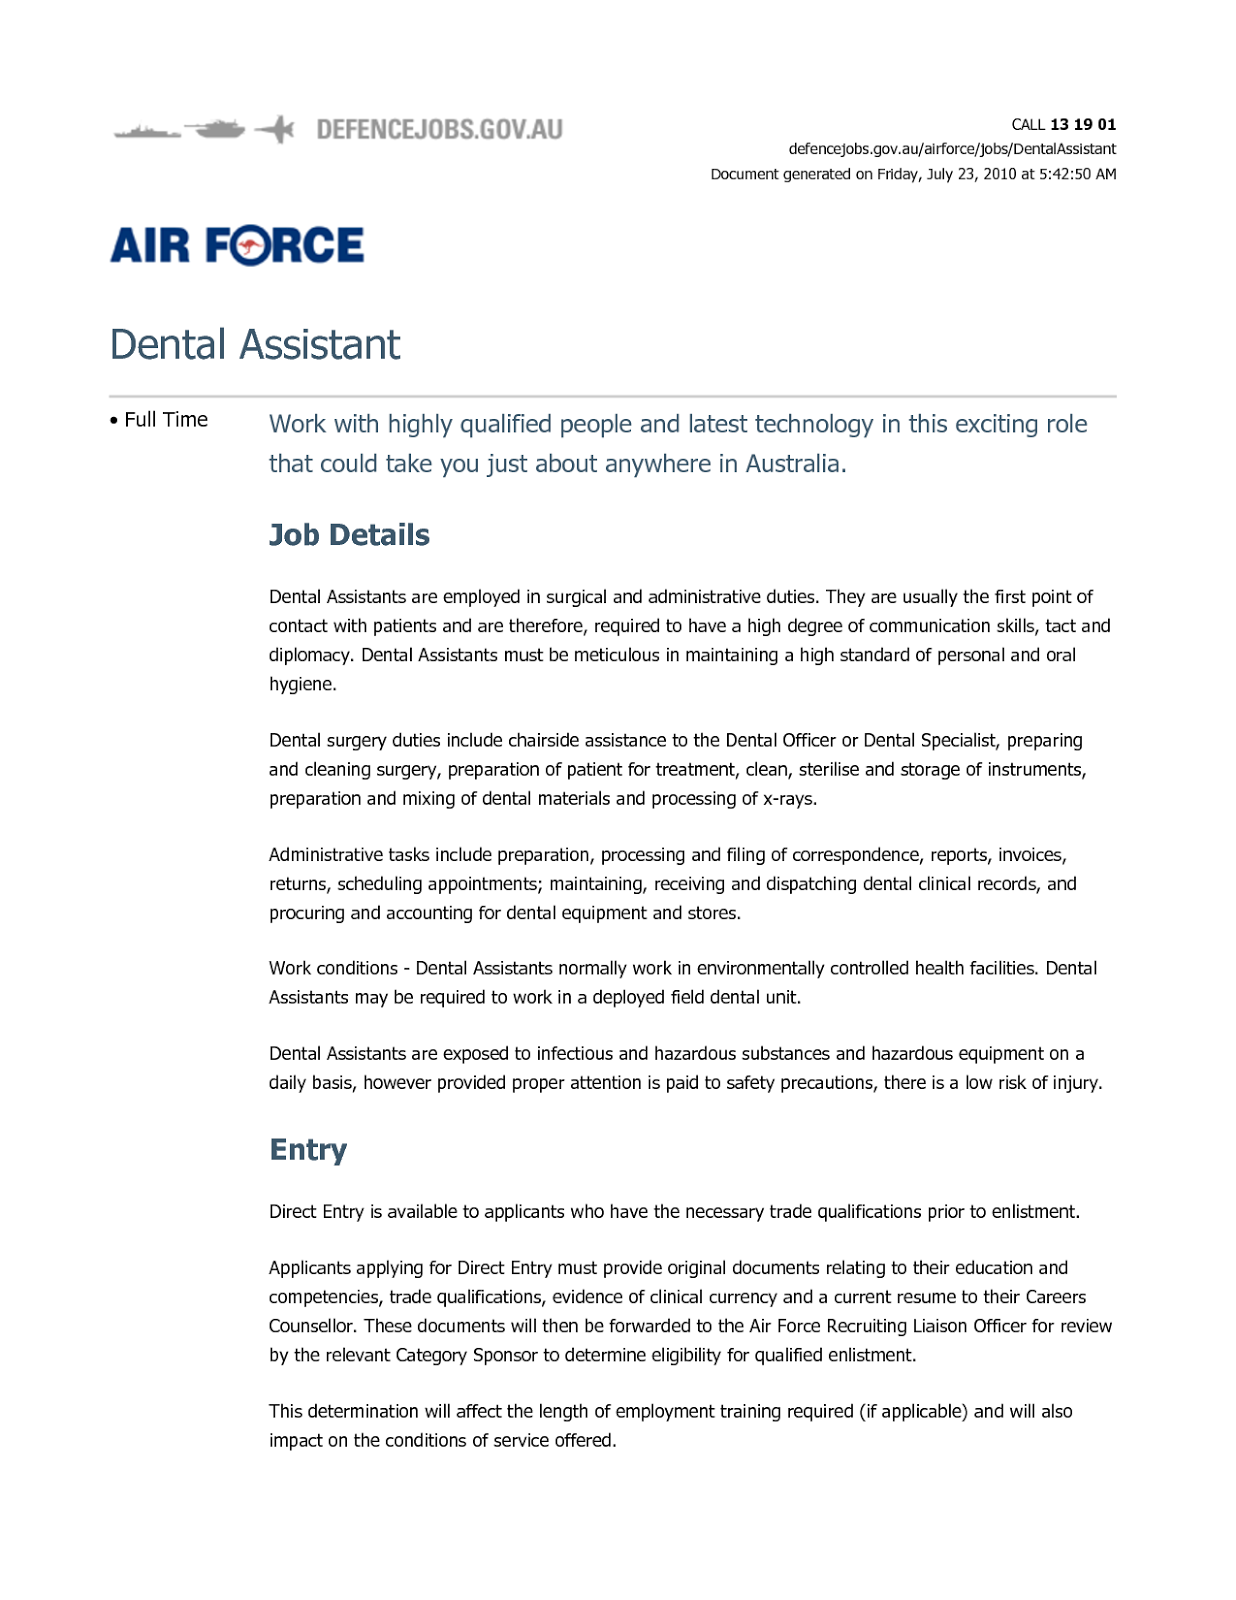 writing resume examples - Air Force Resume Builder